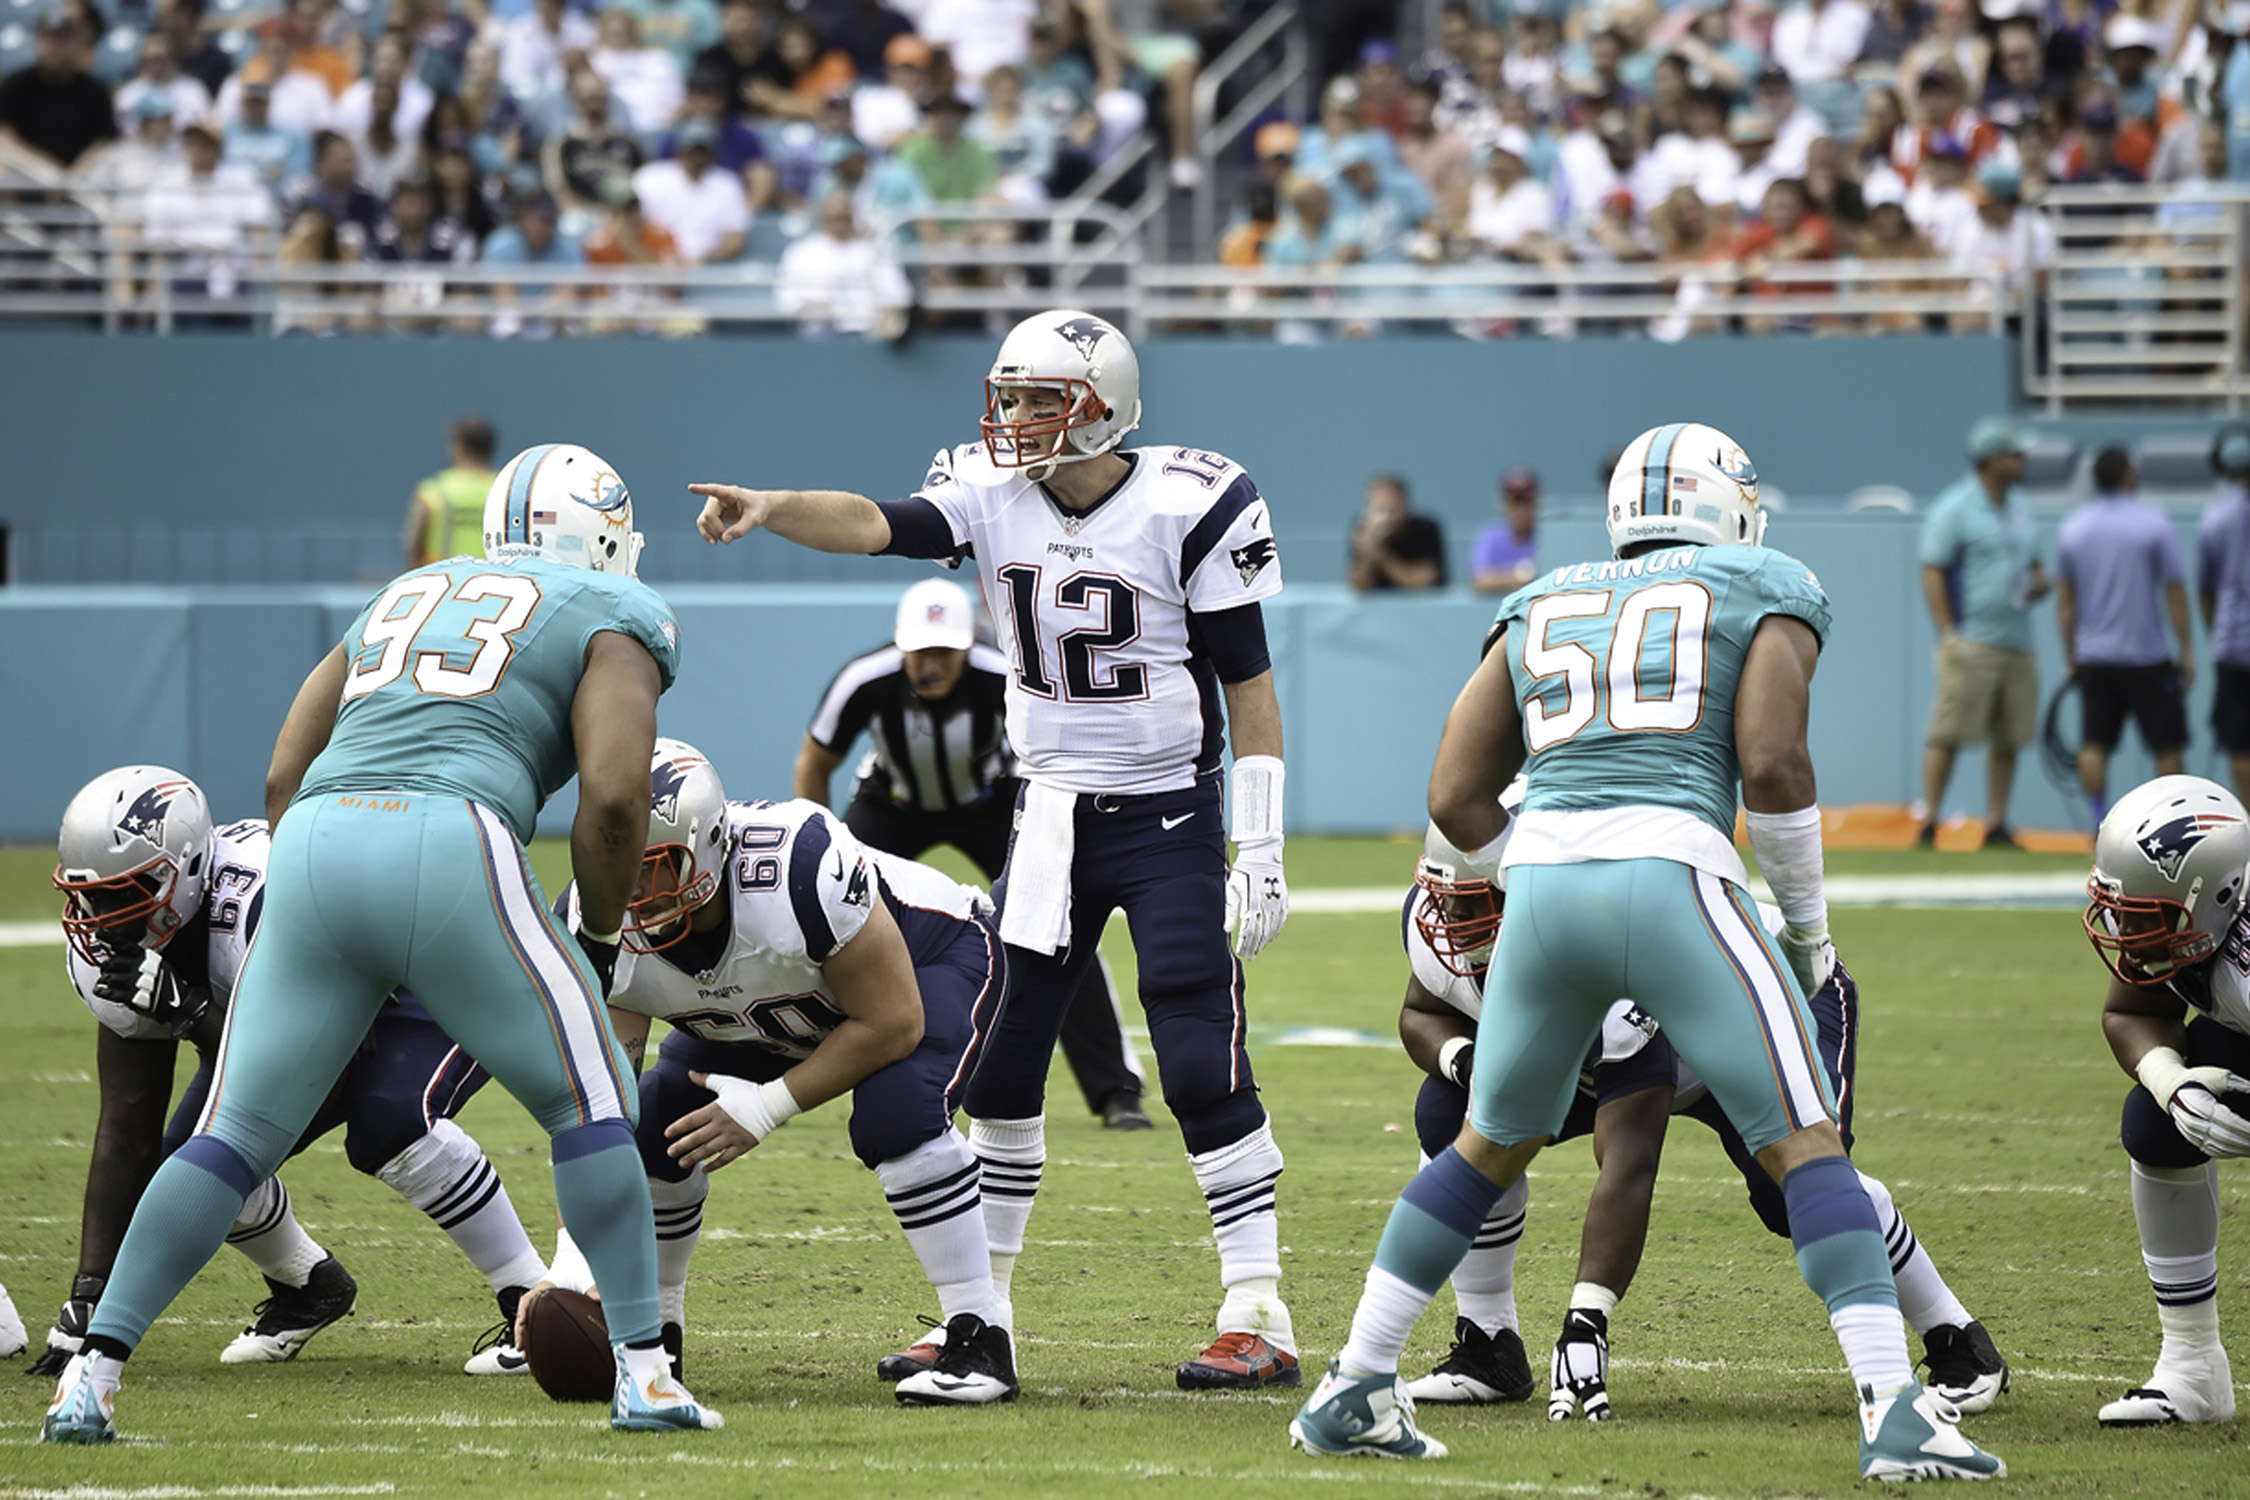 The Dolphins have actually beaten Tom Brady nine times in the regular season, more than any other team. Not bad! But 'Fins fans still hate Brady for dominating the AFC East year after year.